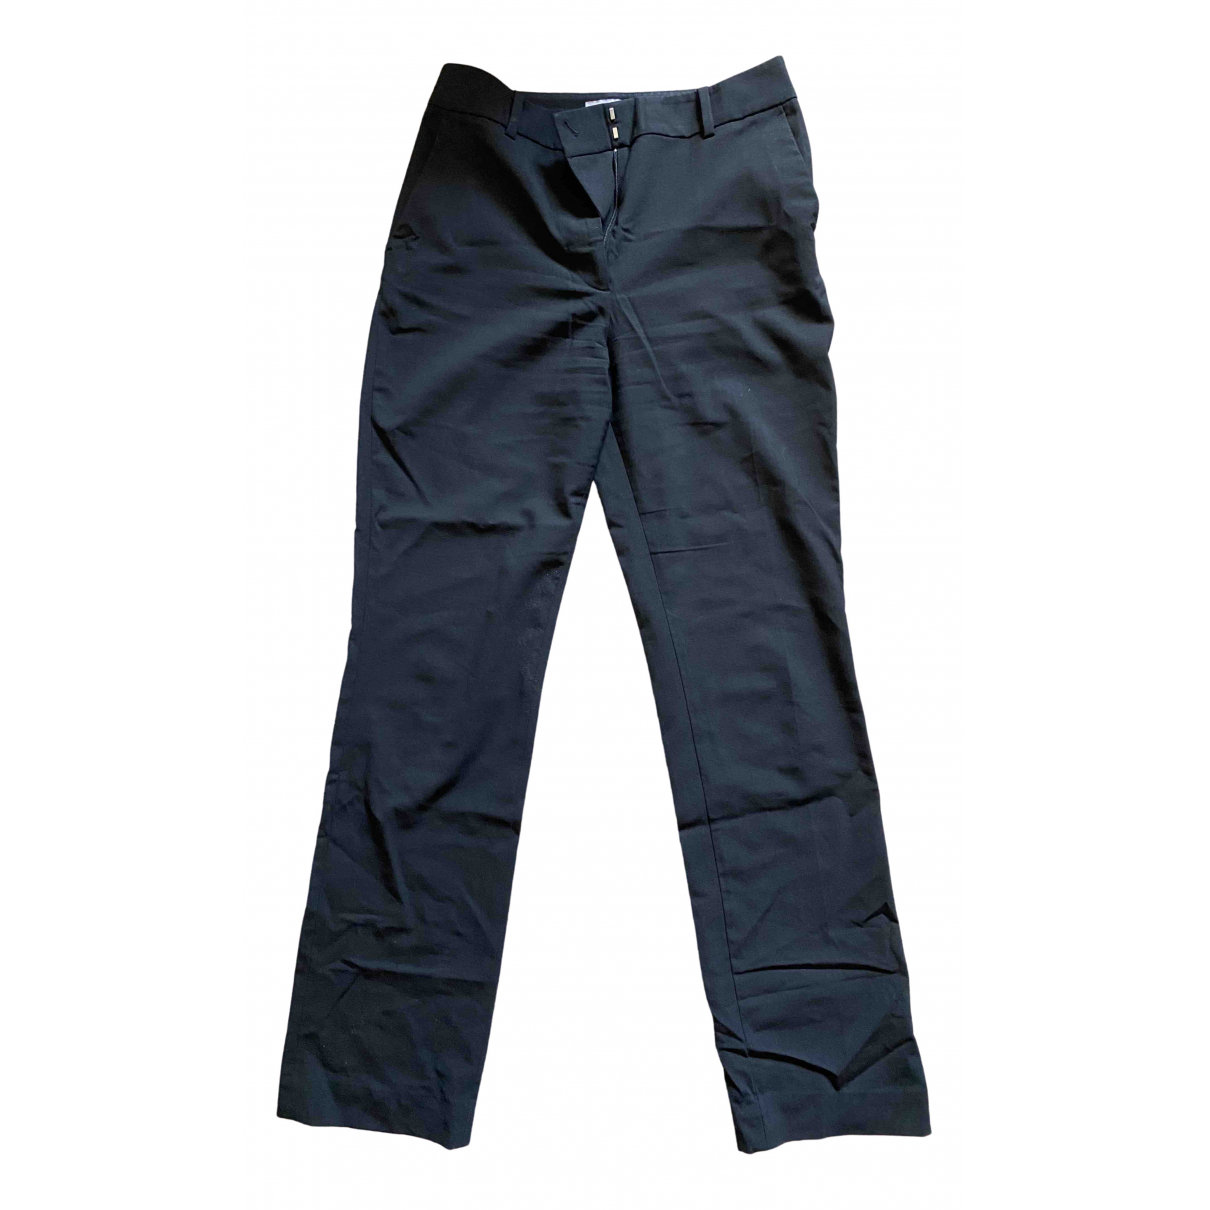 & Stories \N Black Cotton Trousers for Women 34 FR